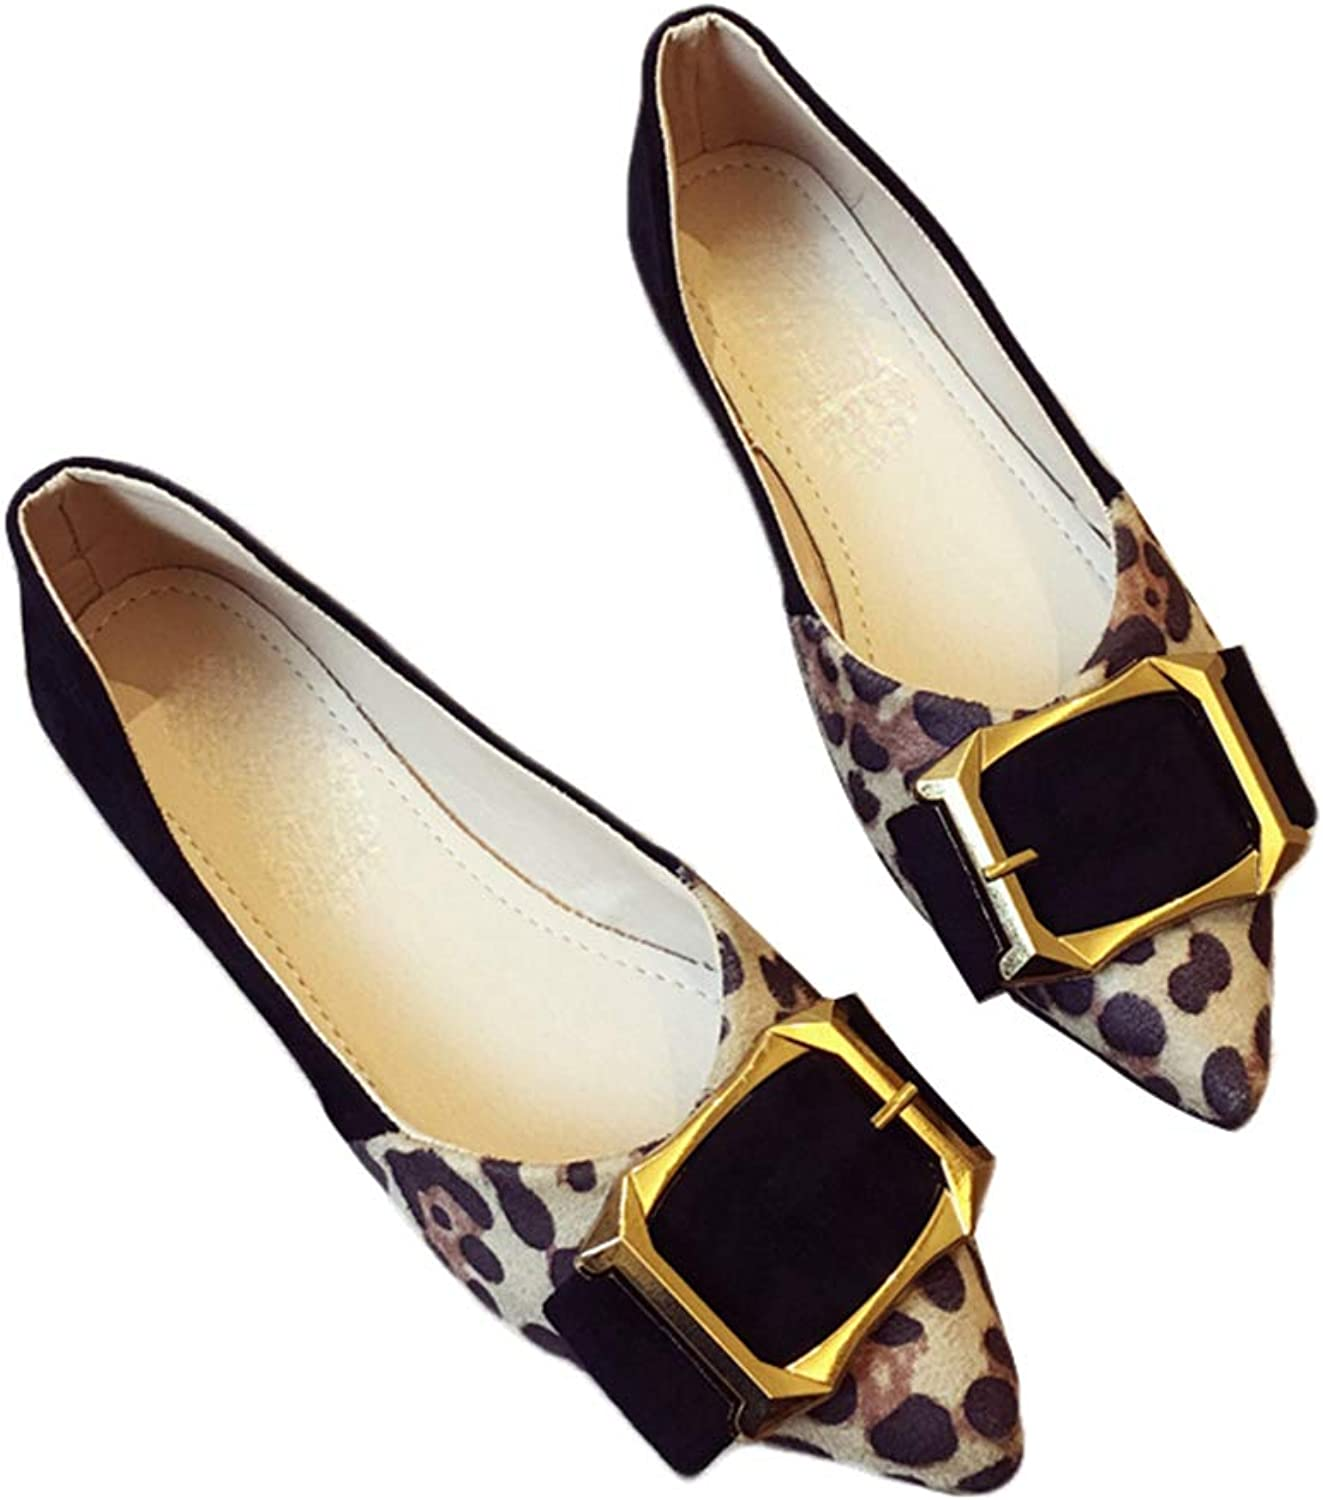 Kyle Walsh Pa Women's Flats shoes Pointed Toe Metal Buckle Leopard Print Ladies Stylish Soft Moccasins